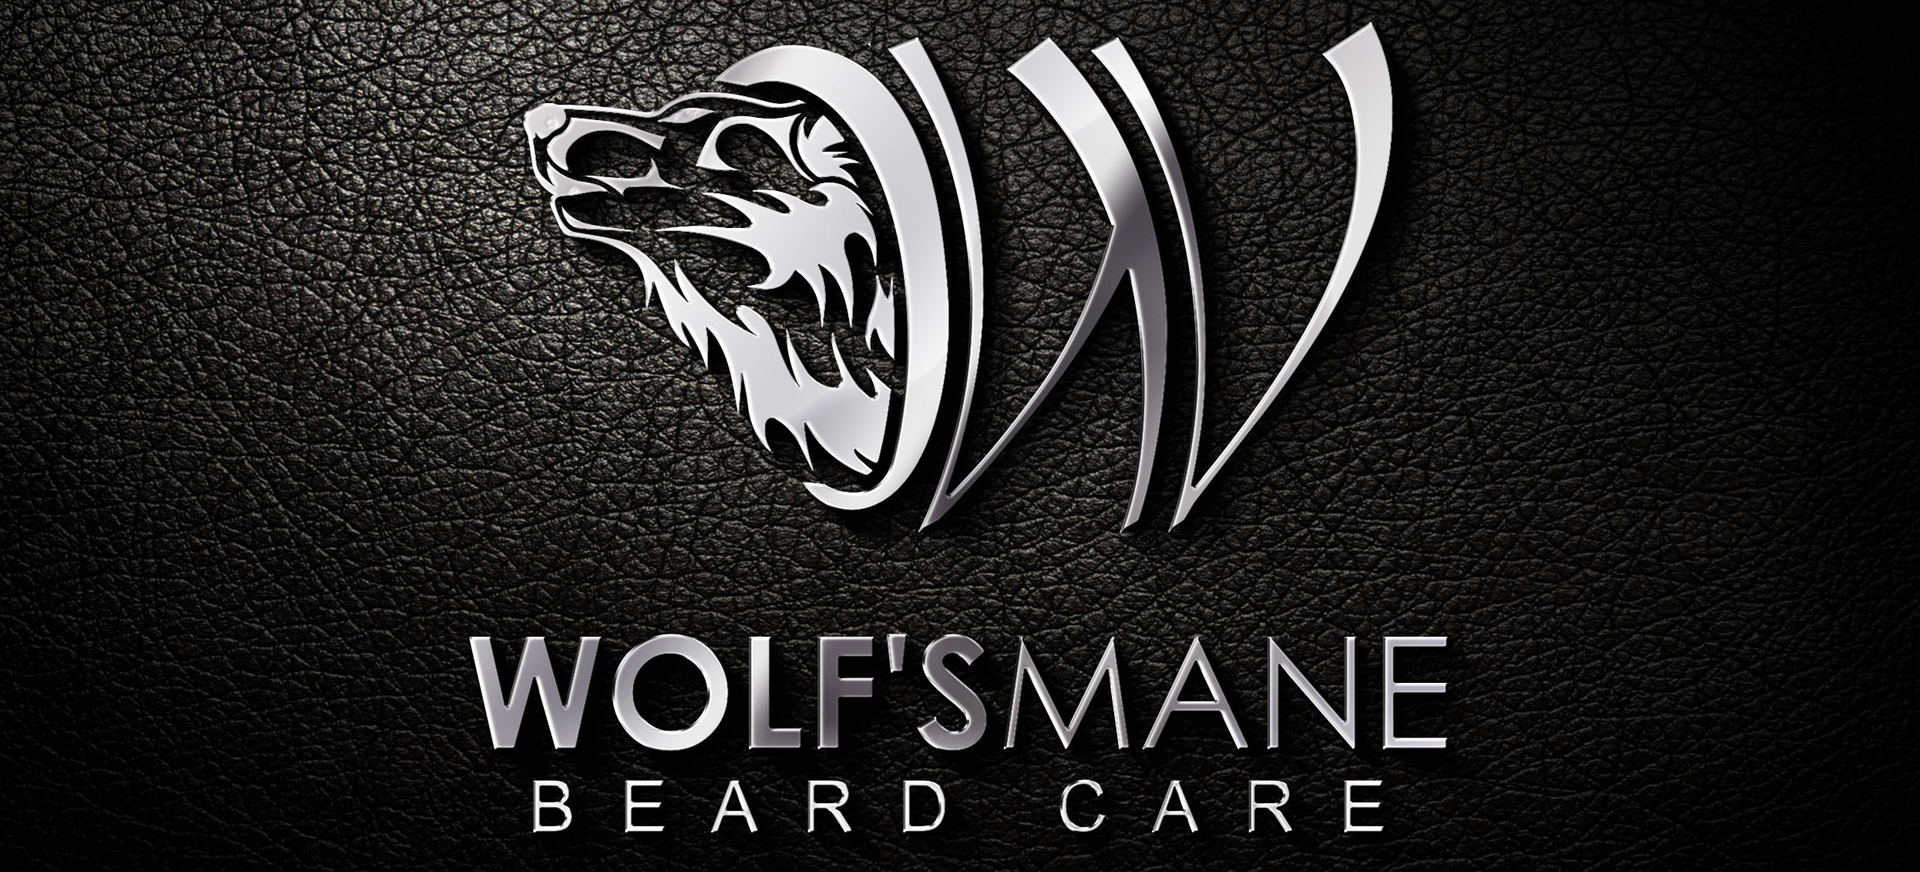 Welcome to Wolf's Mane Beard Care!